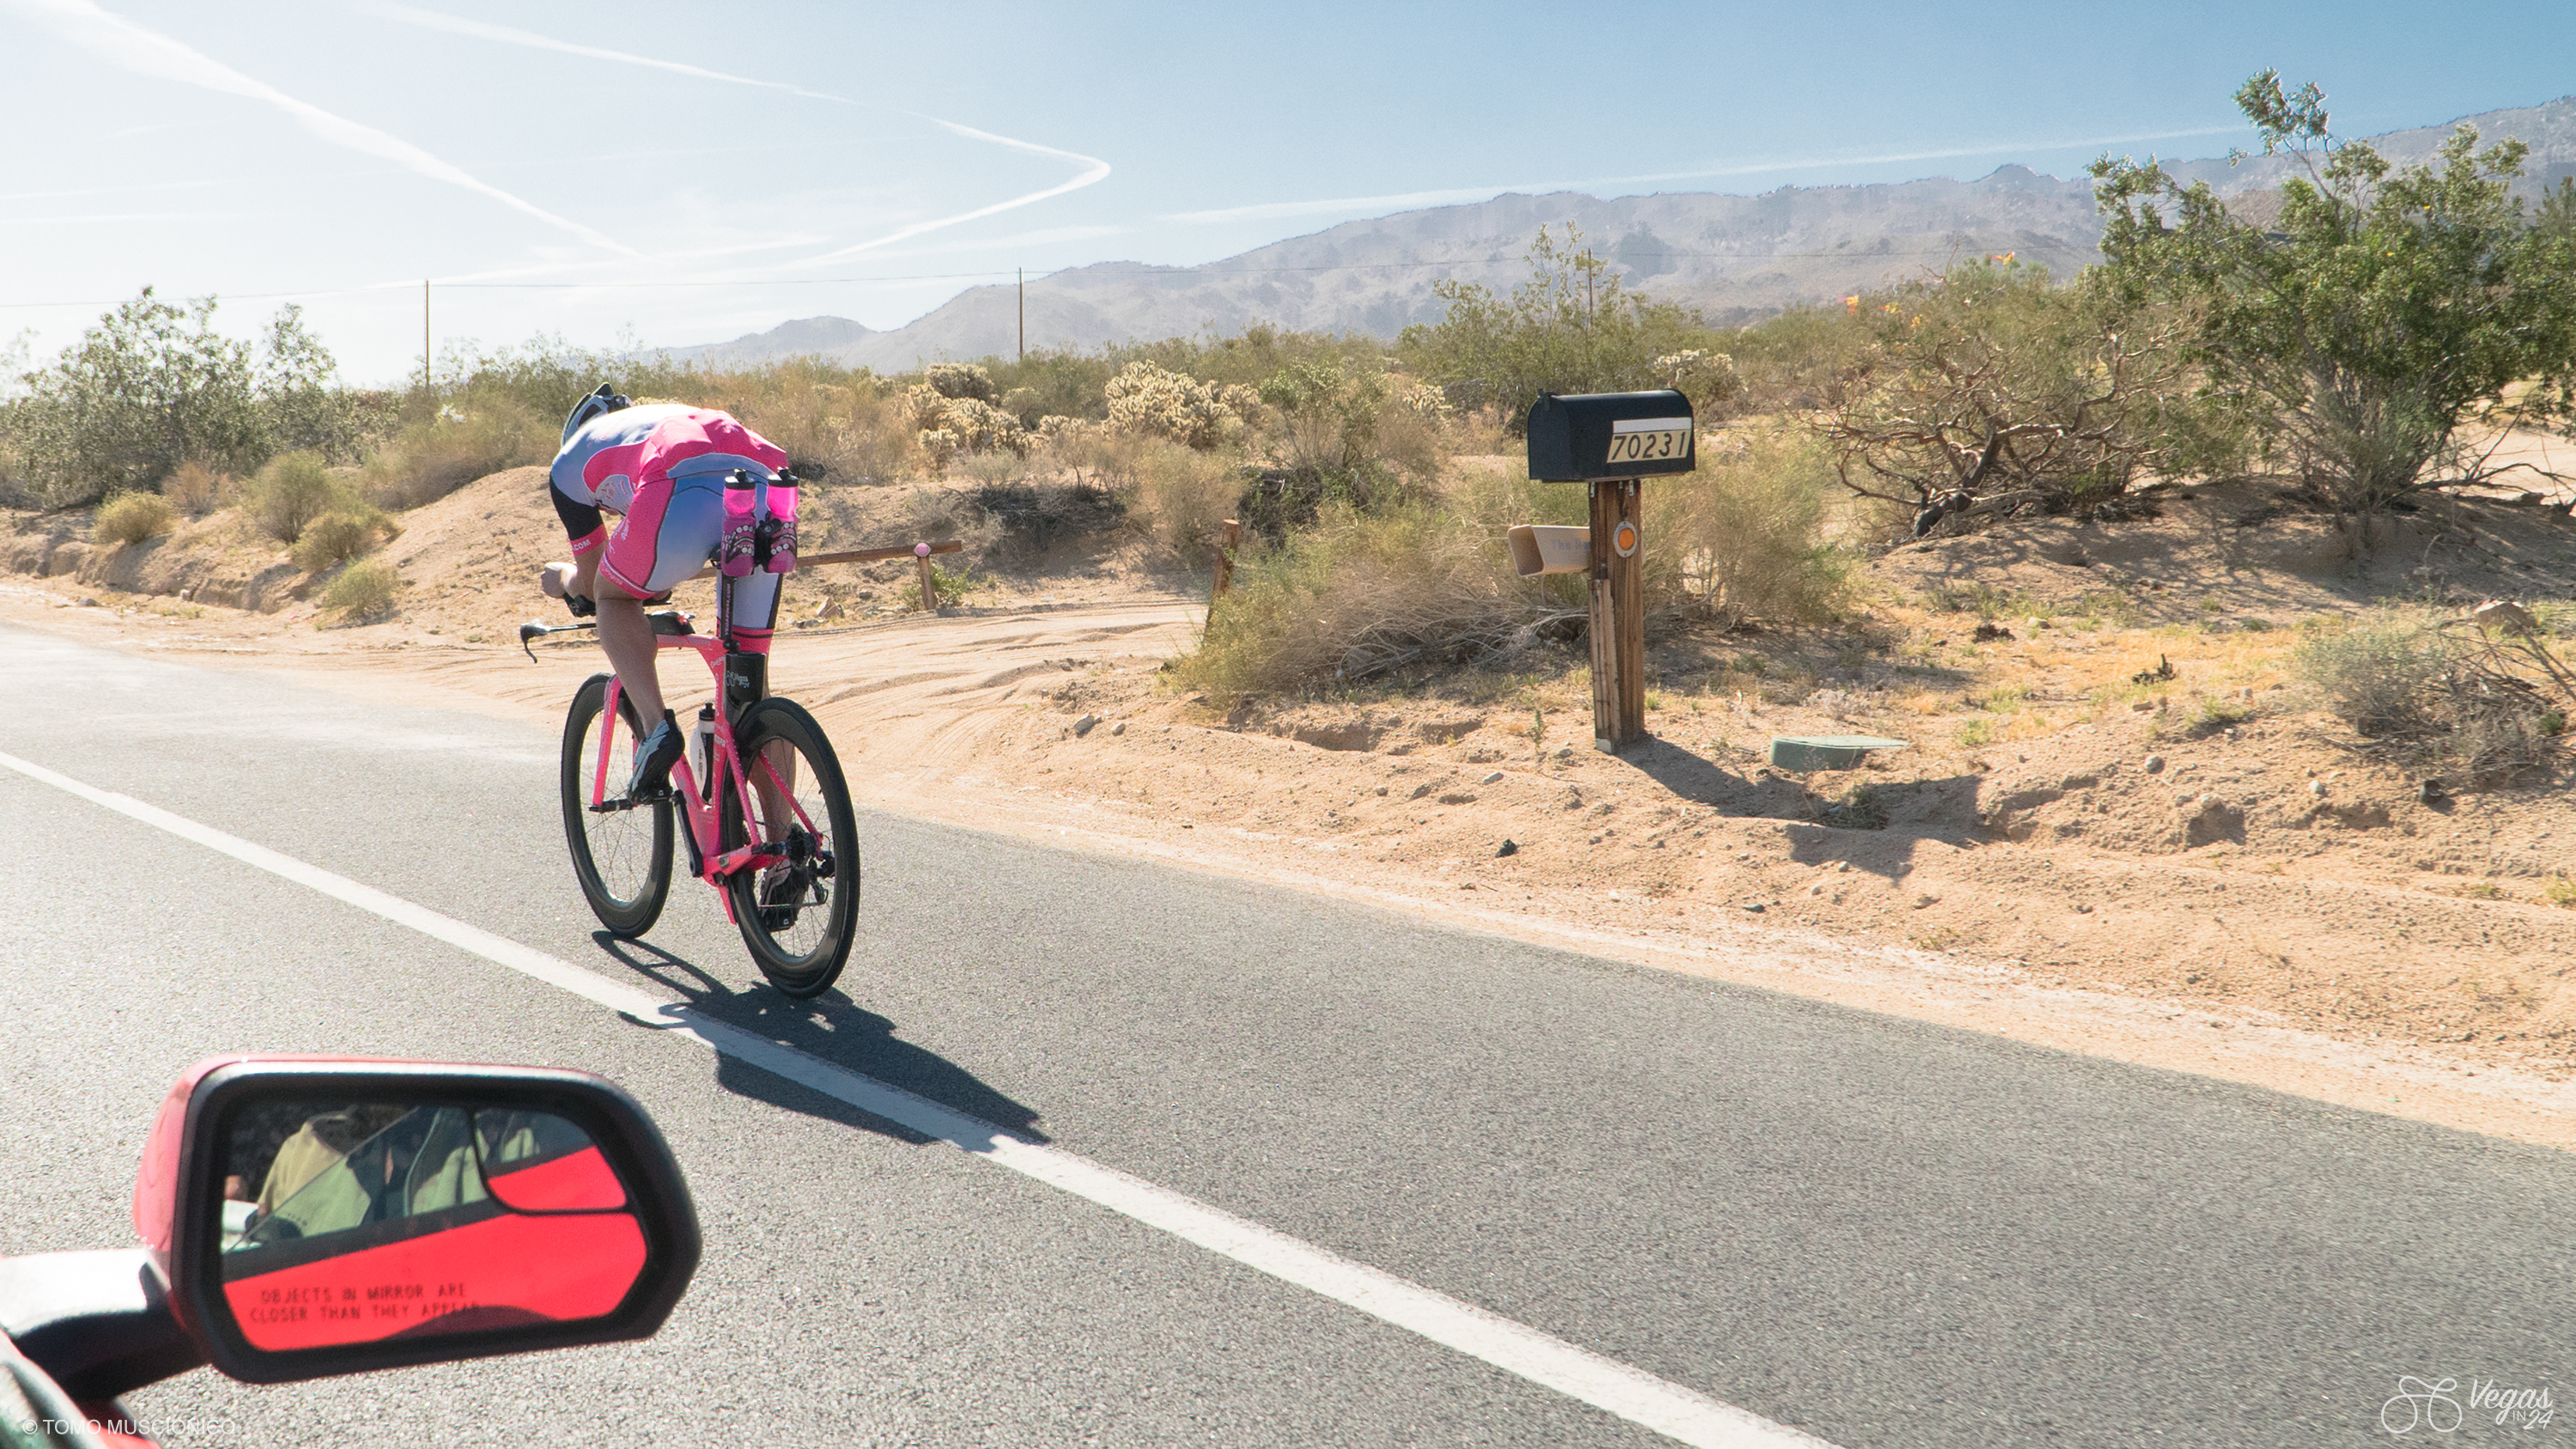 After a 20-mile long climb to Yucca Valley, Andy Funk is enjoying his descent. He is pedaling at race pace and you need a car in order to keep up.